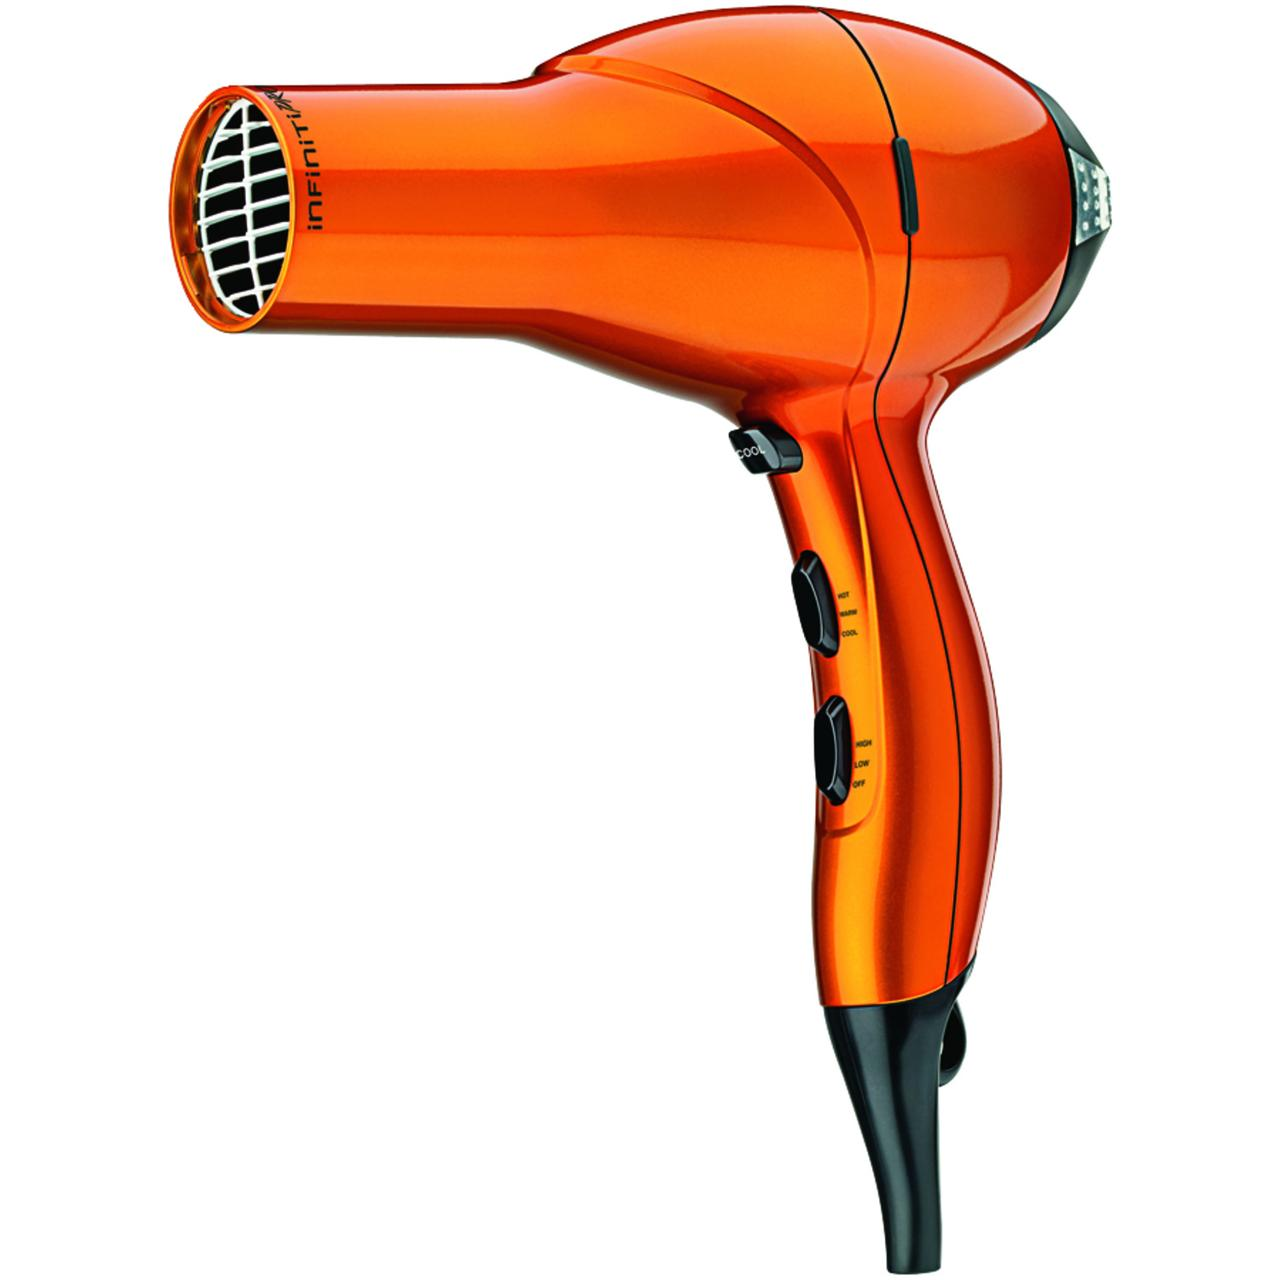 Walmart Hair Styling Tools Infinitiproconair 259Wmy 1875 Watt Styling Tool Blow Dryer .